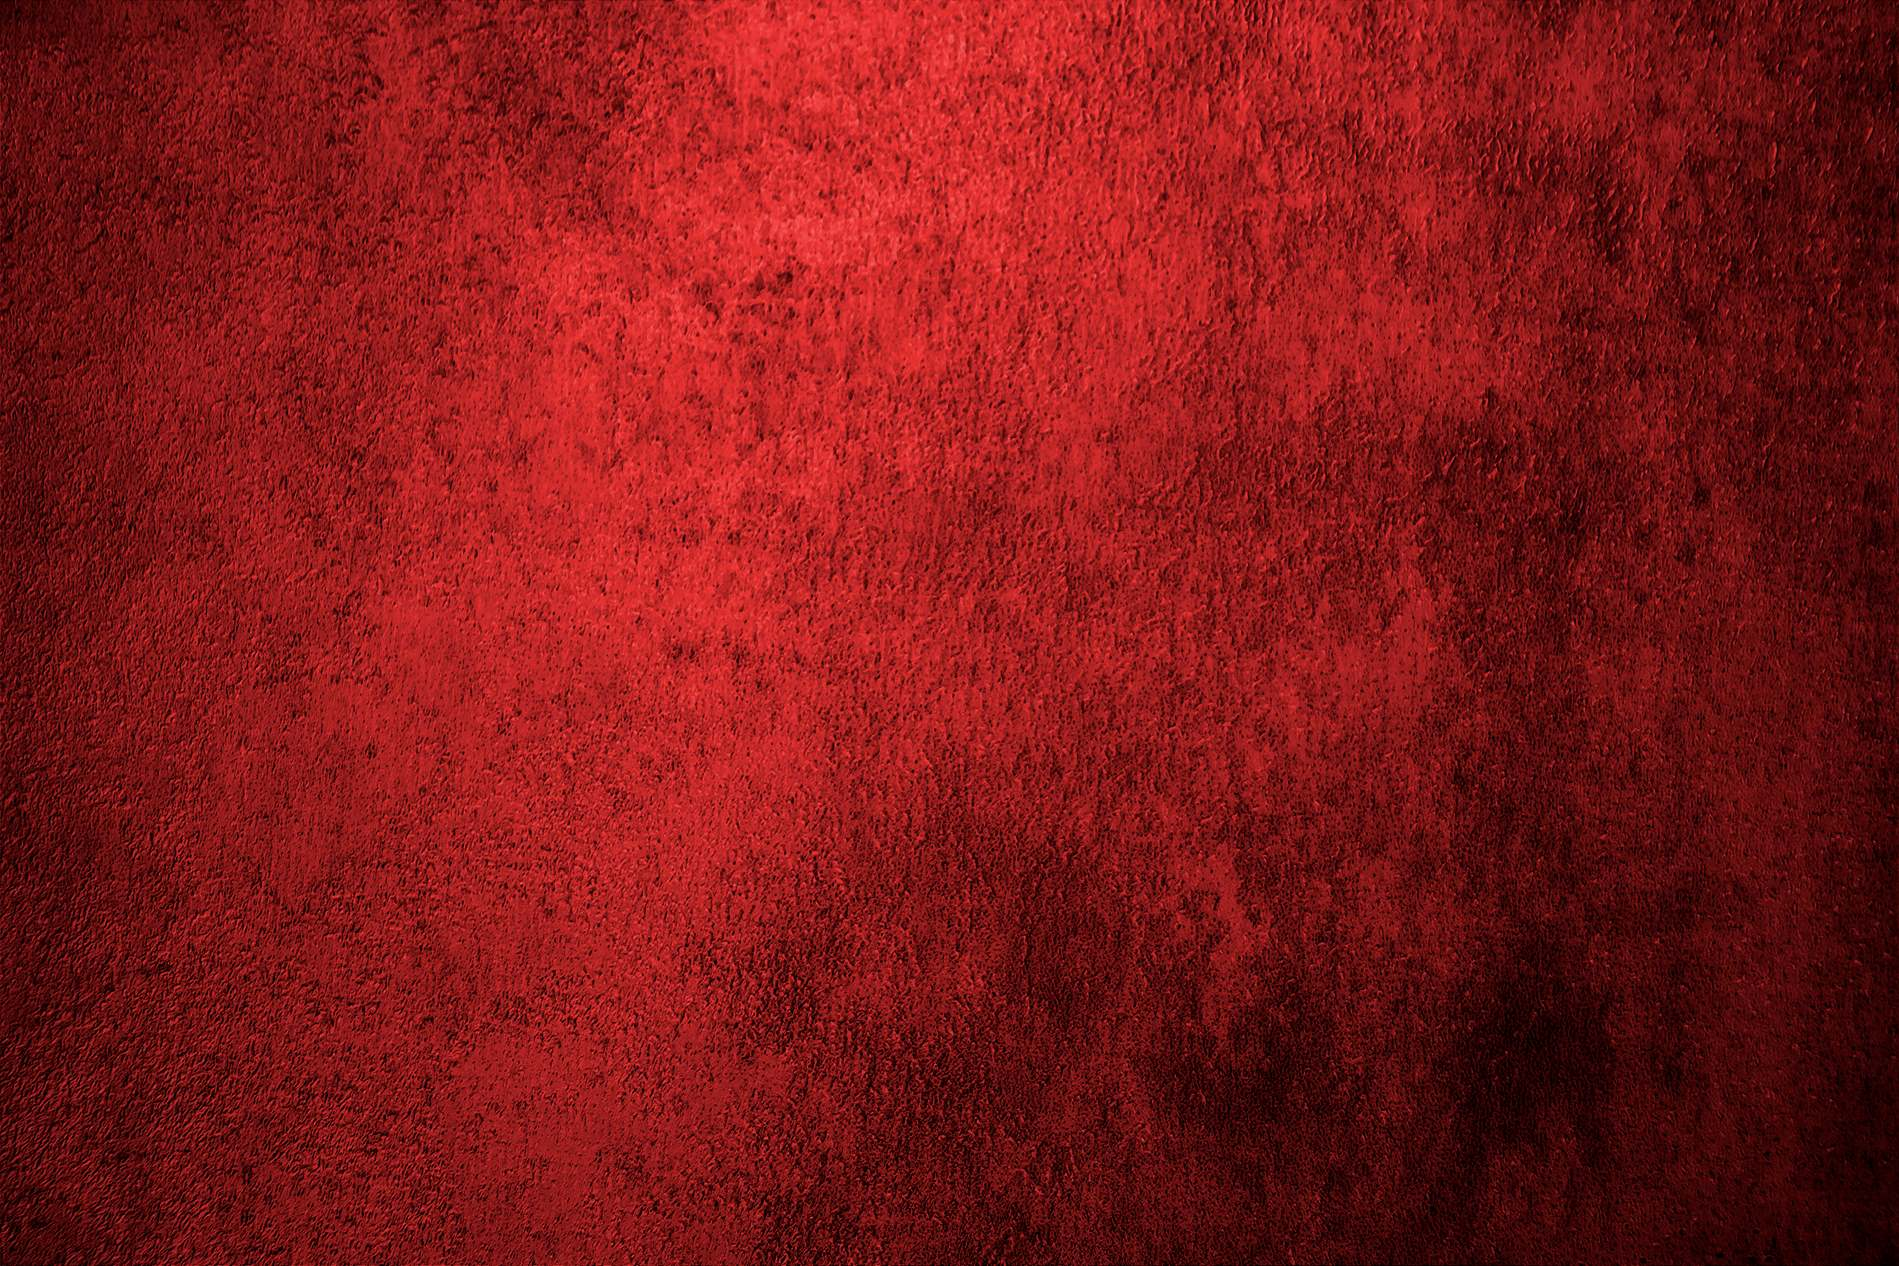 Red Grunge Wall Background Texture - PhotoHDX